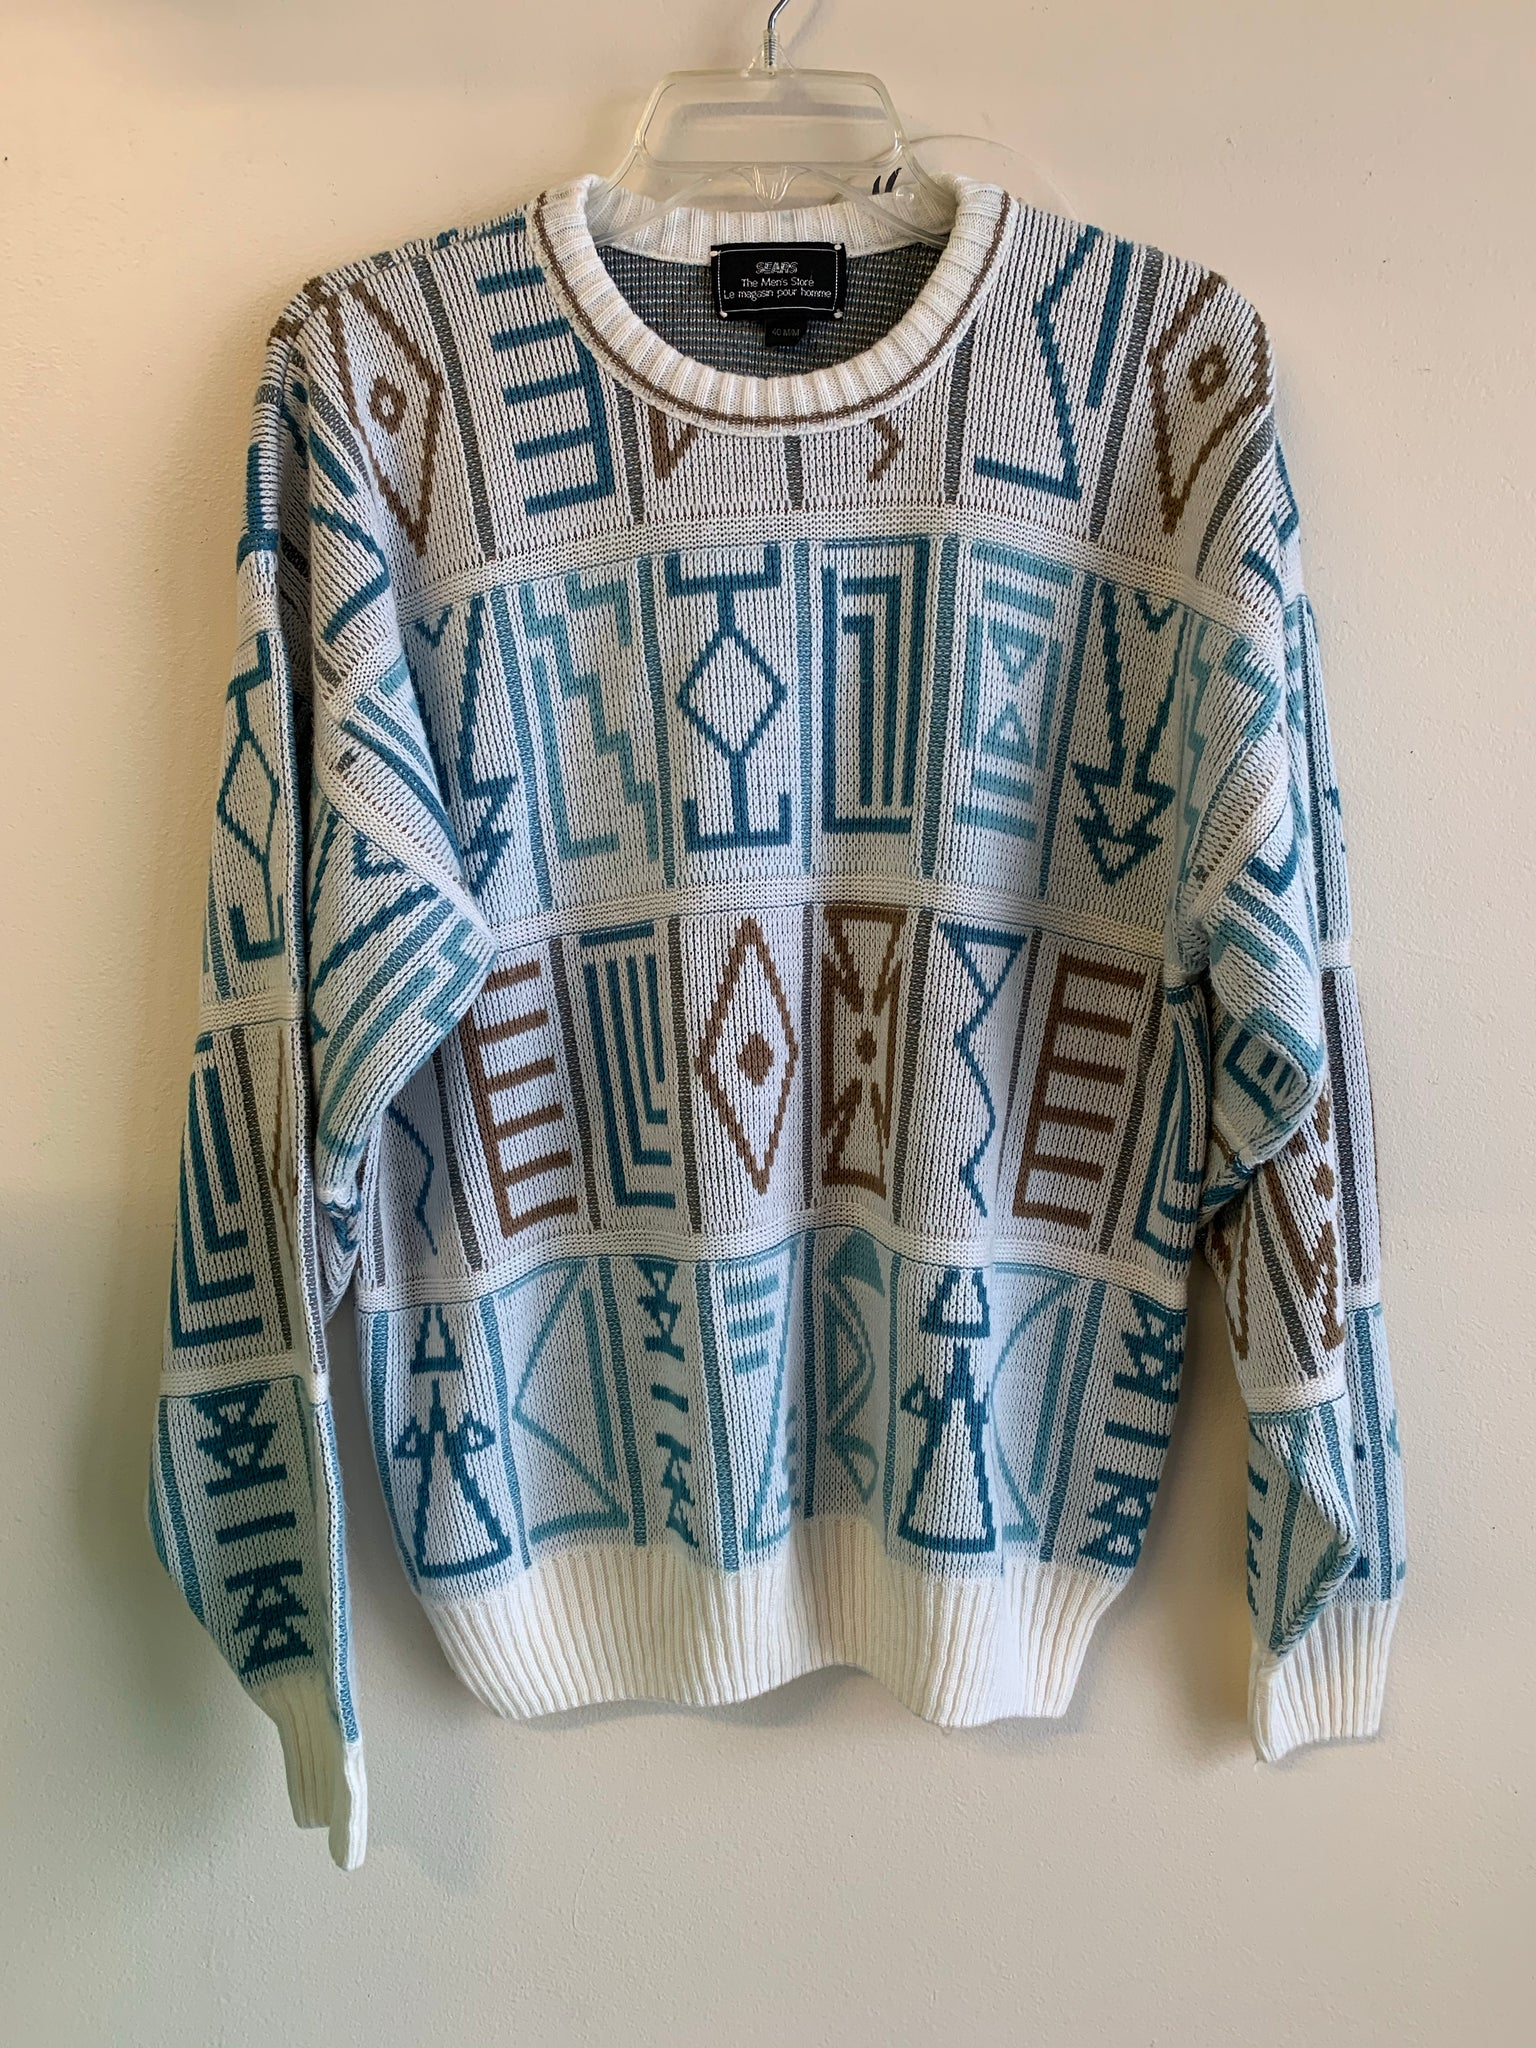 Groovy Geometric Slouchy Sweater